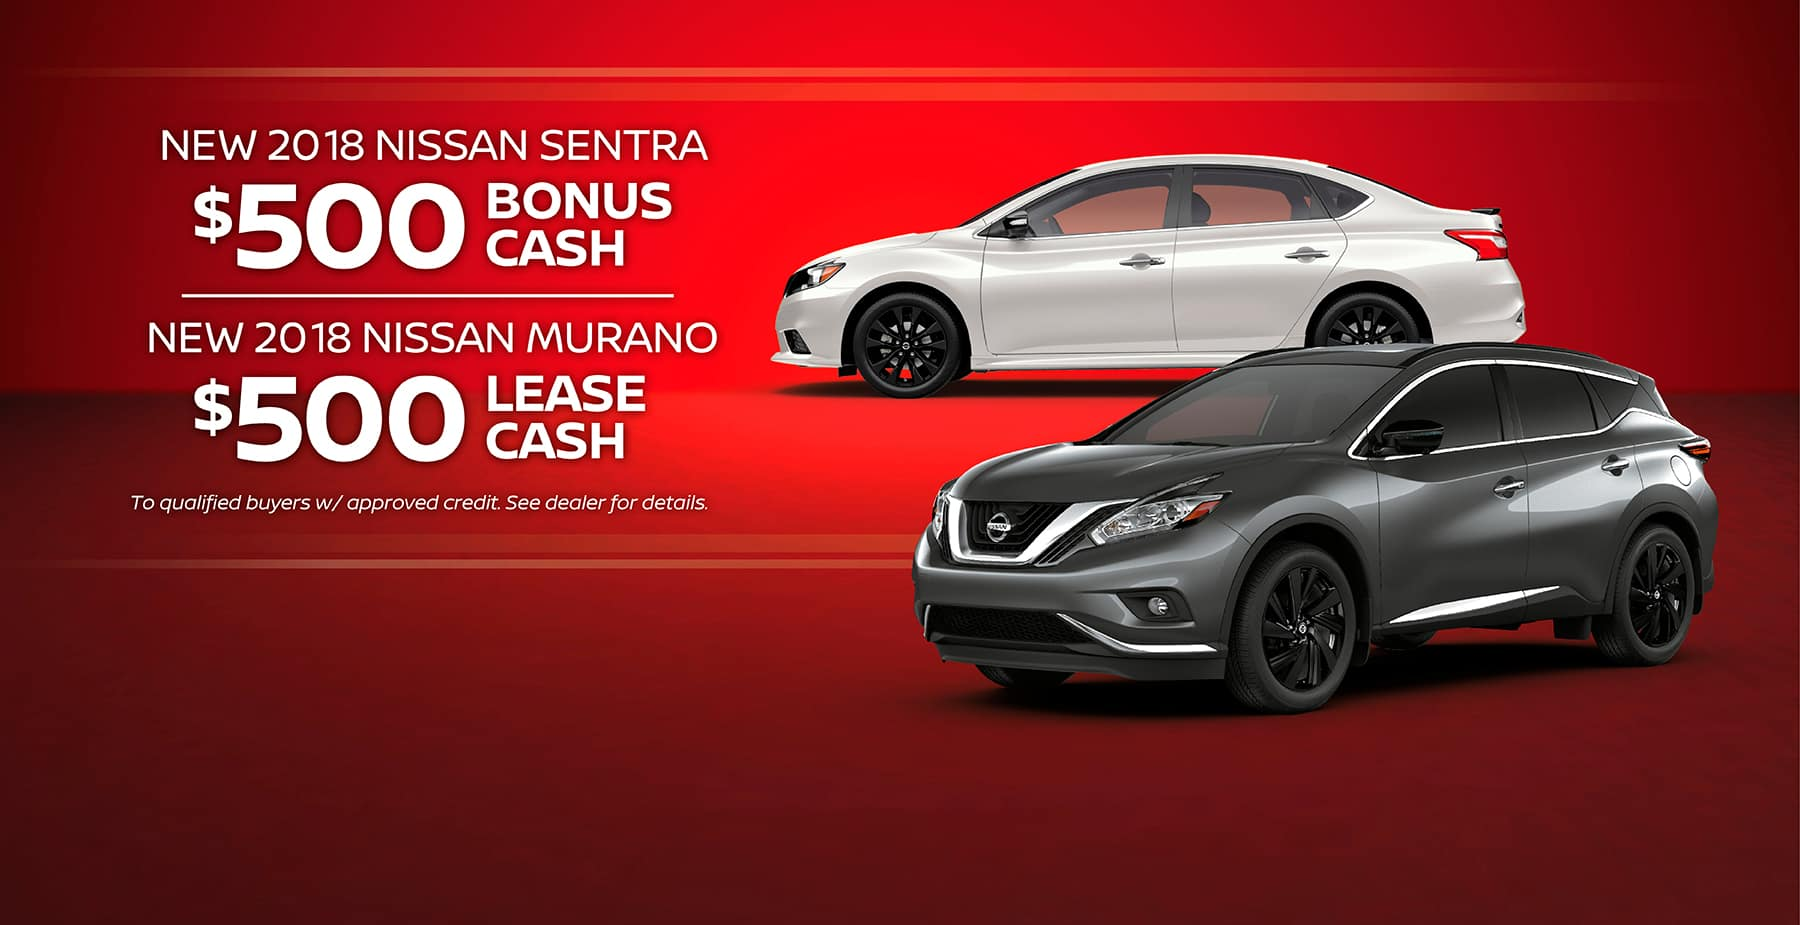 $500 Bonus Cash Available on Sentra and Murano at Star Nissan!